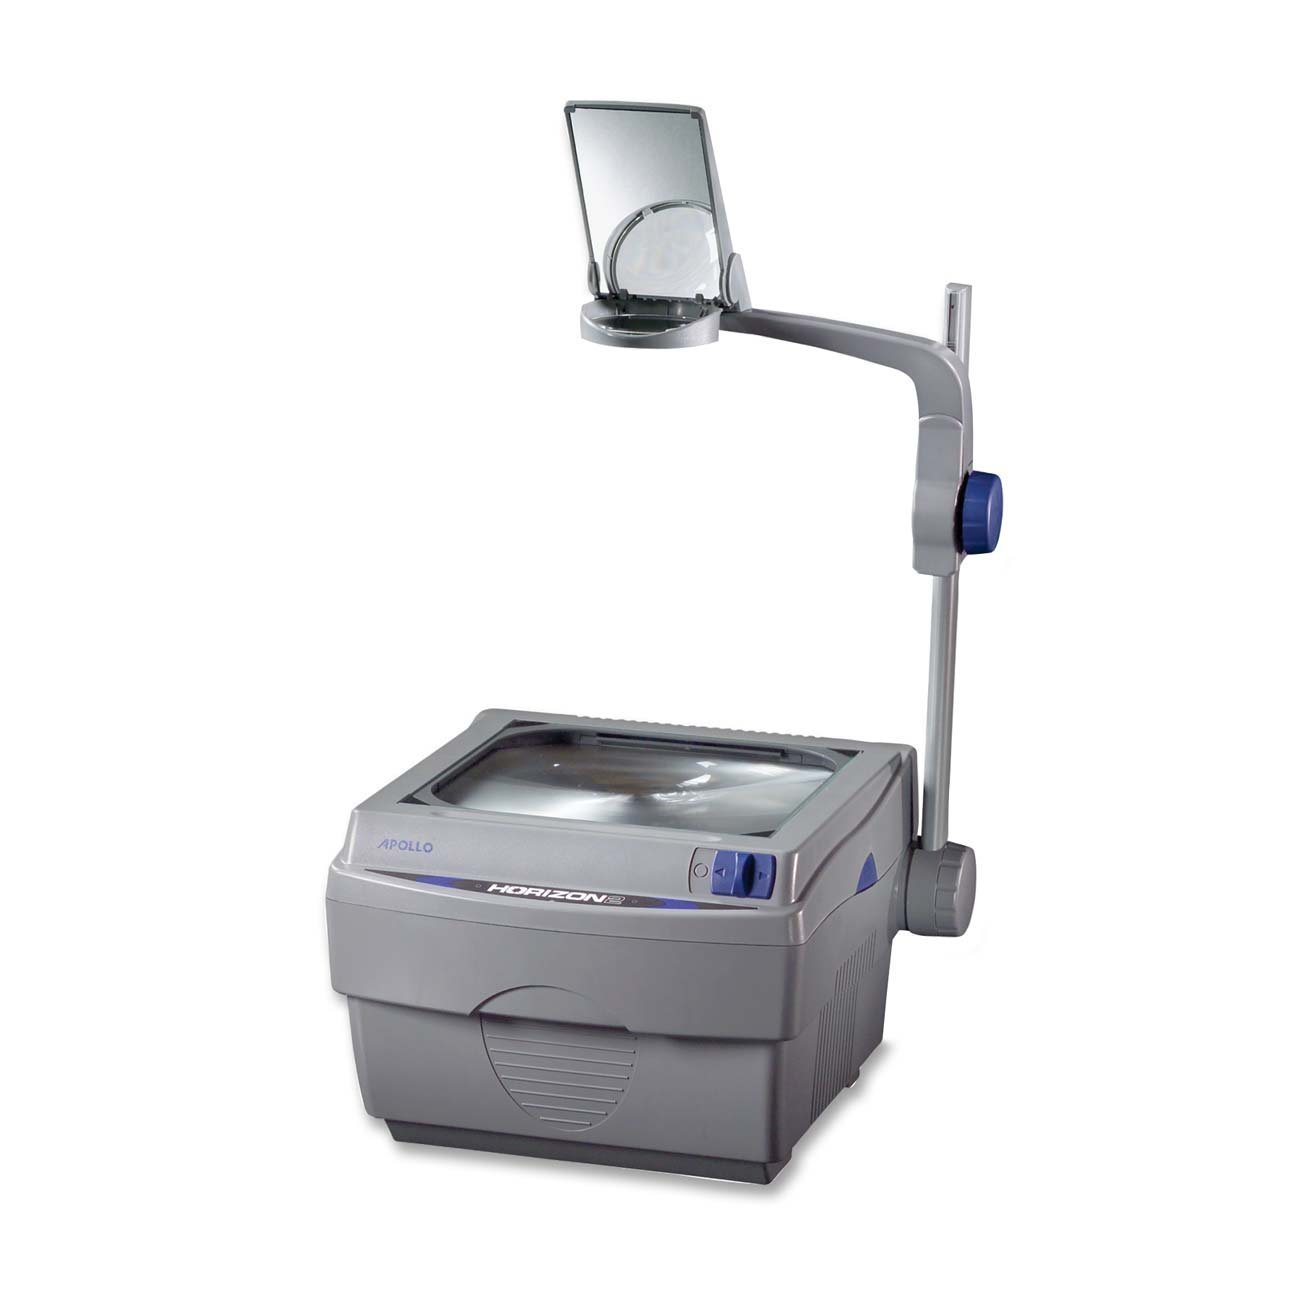 Apollo Horizon 2 Overhead Projector, 15 x 14 x 27 Inches, Open Head (V16000M)